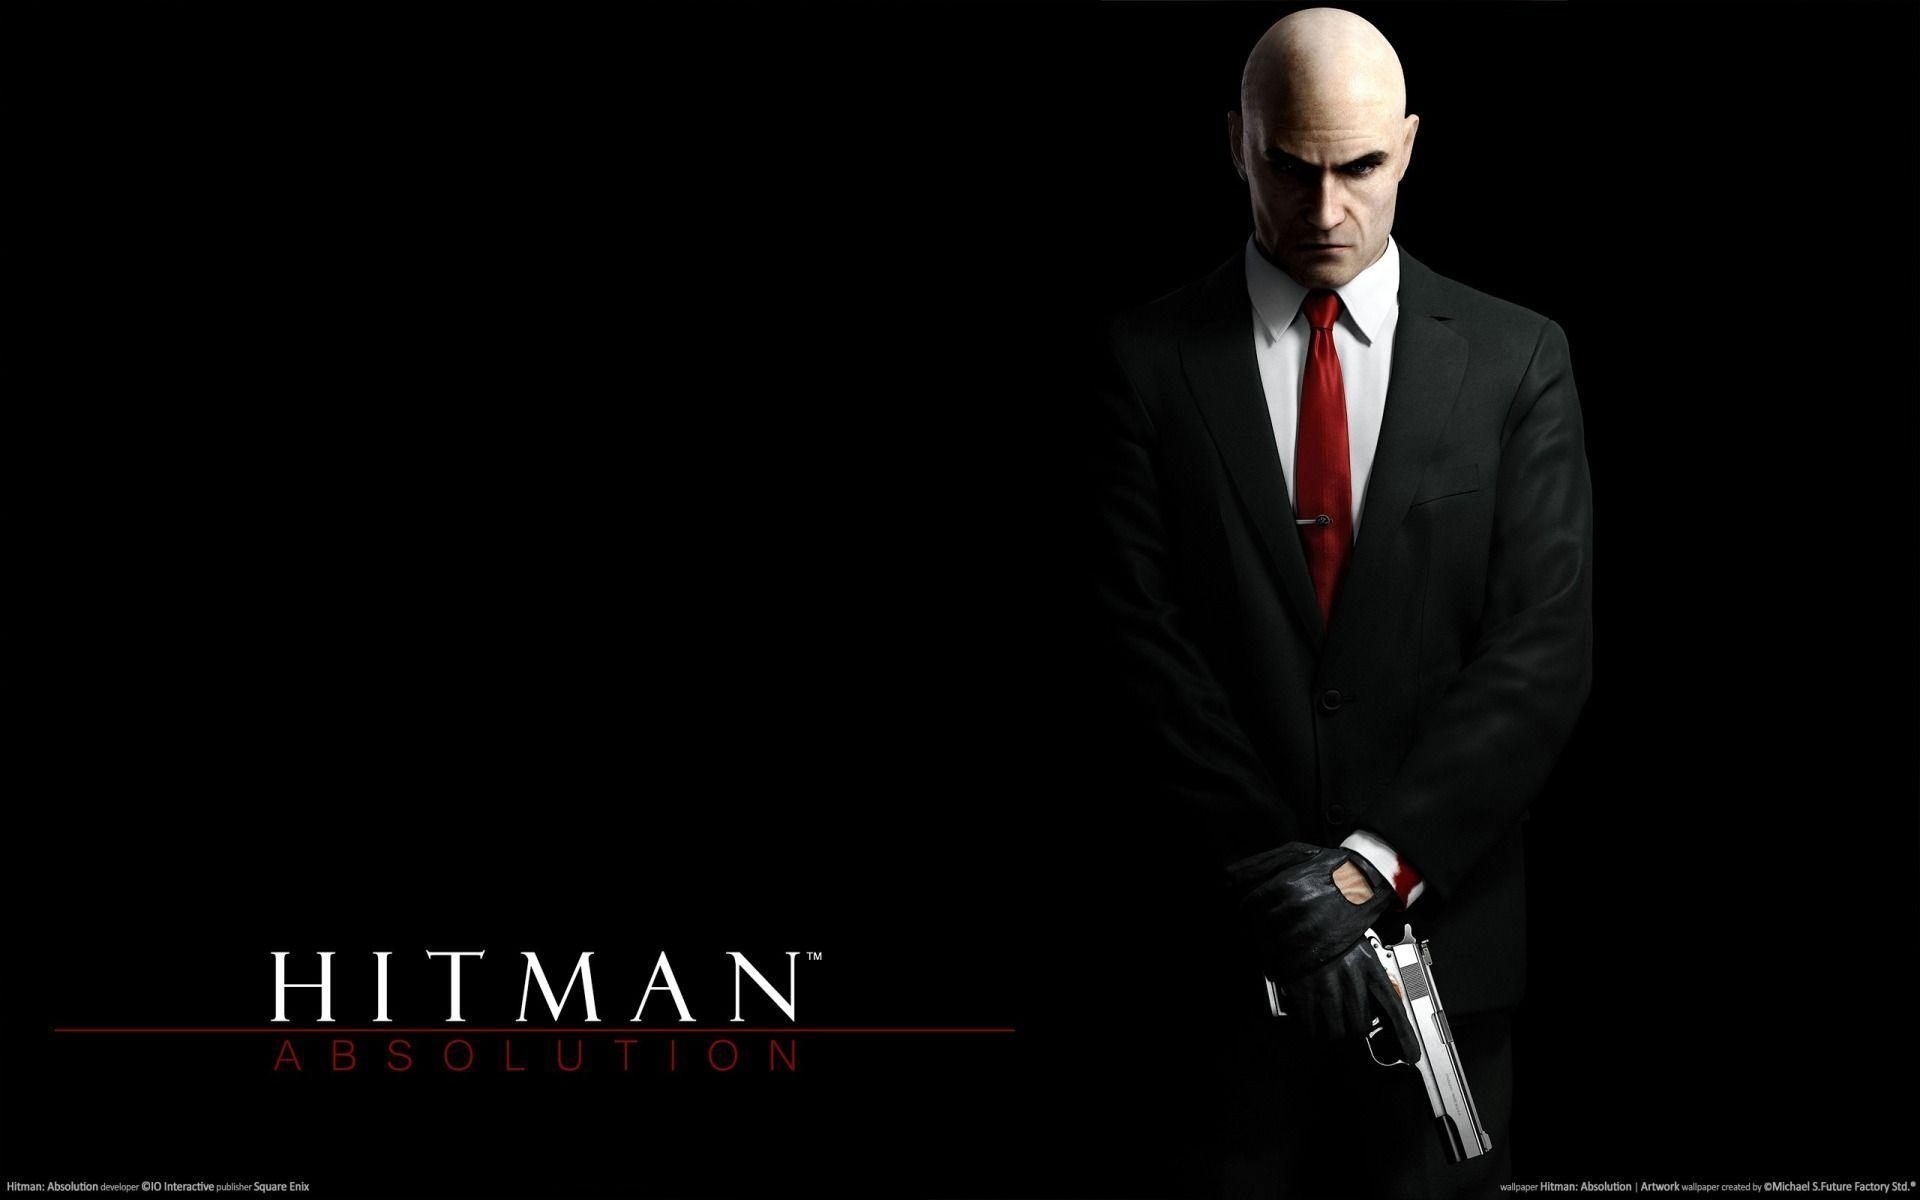 Hitman Wallpapers - Full HD wallpaper search